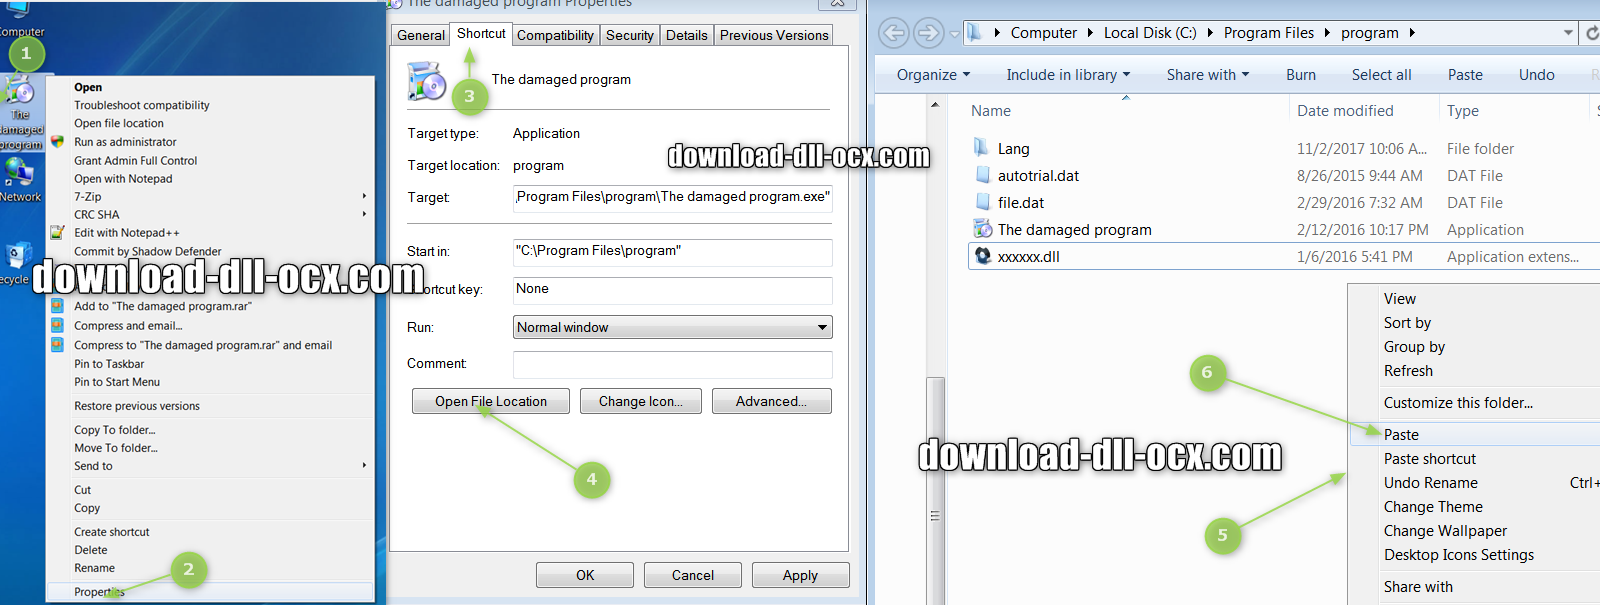 how to install wmiprop.dll file? for fix missing